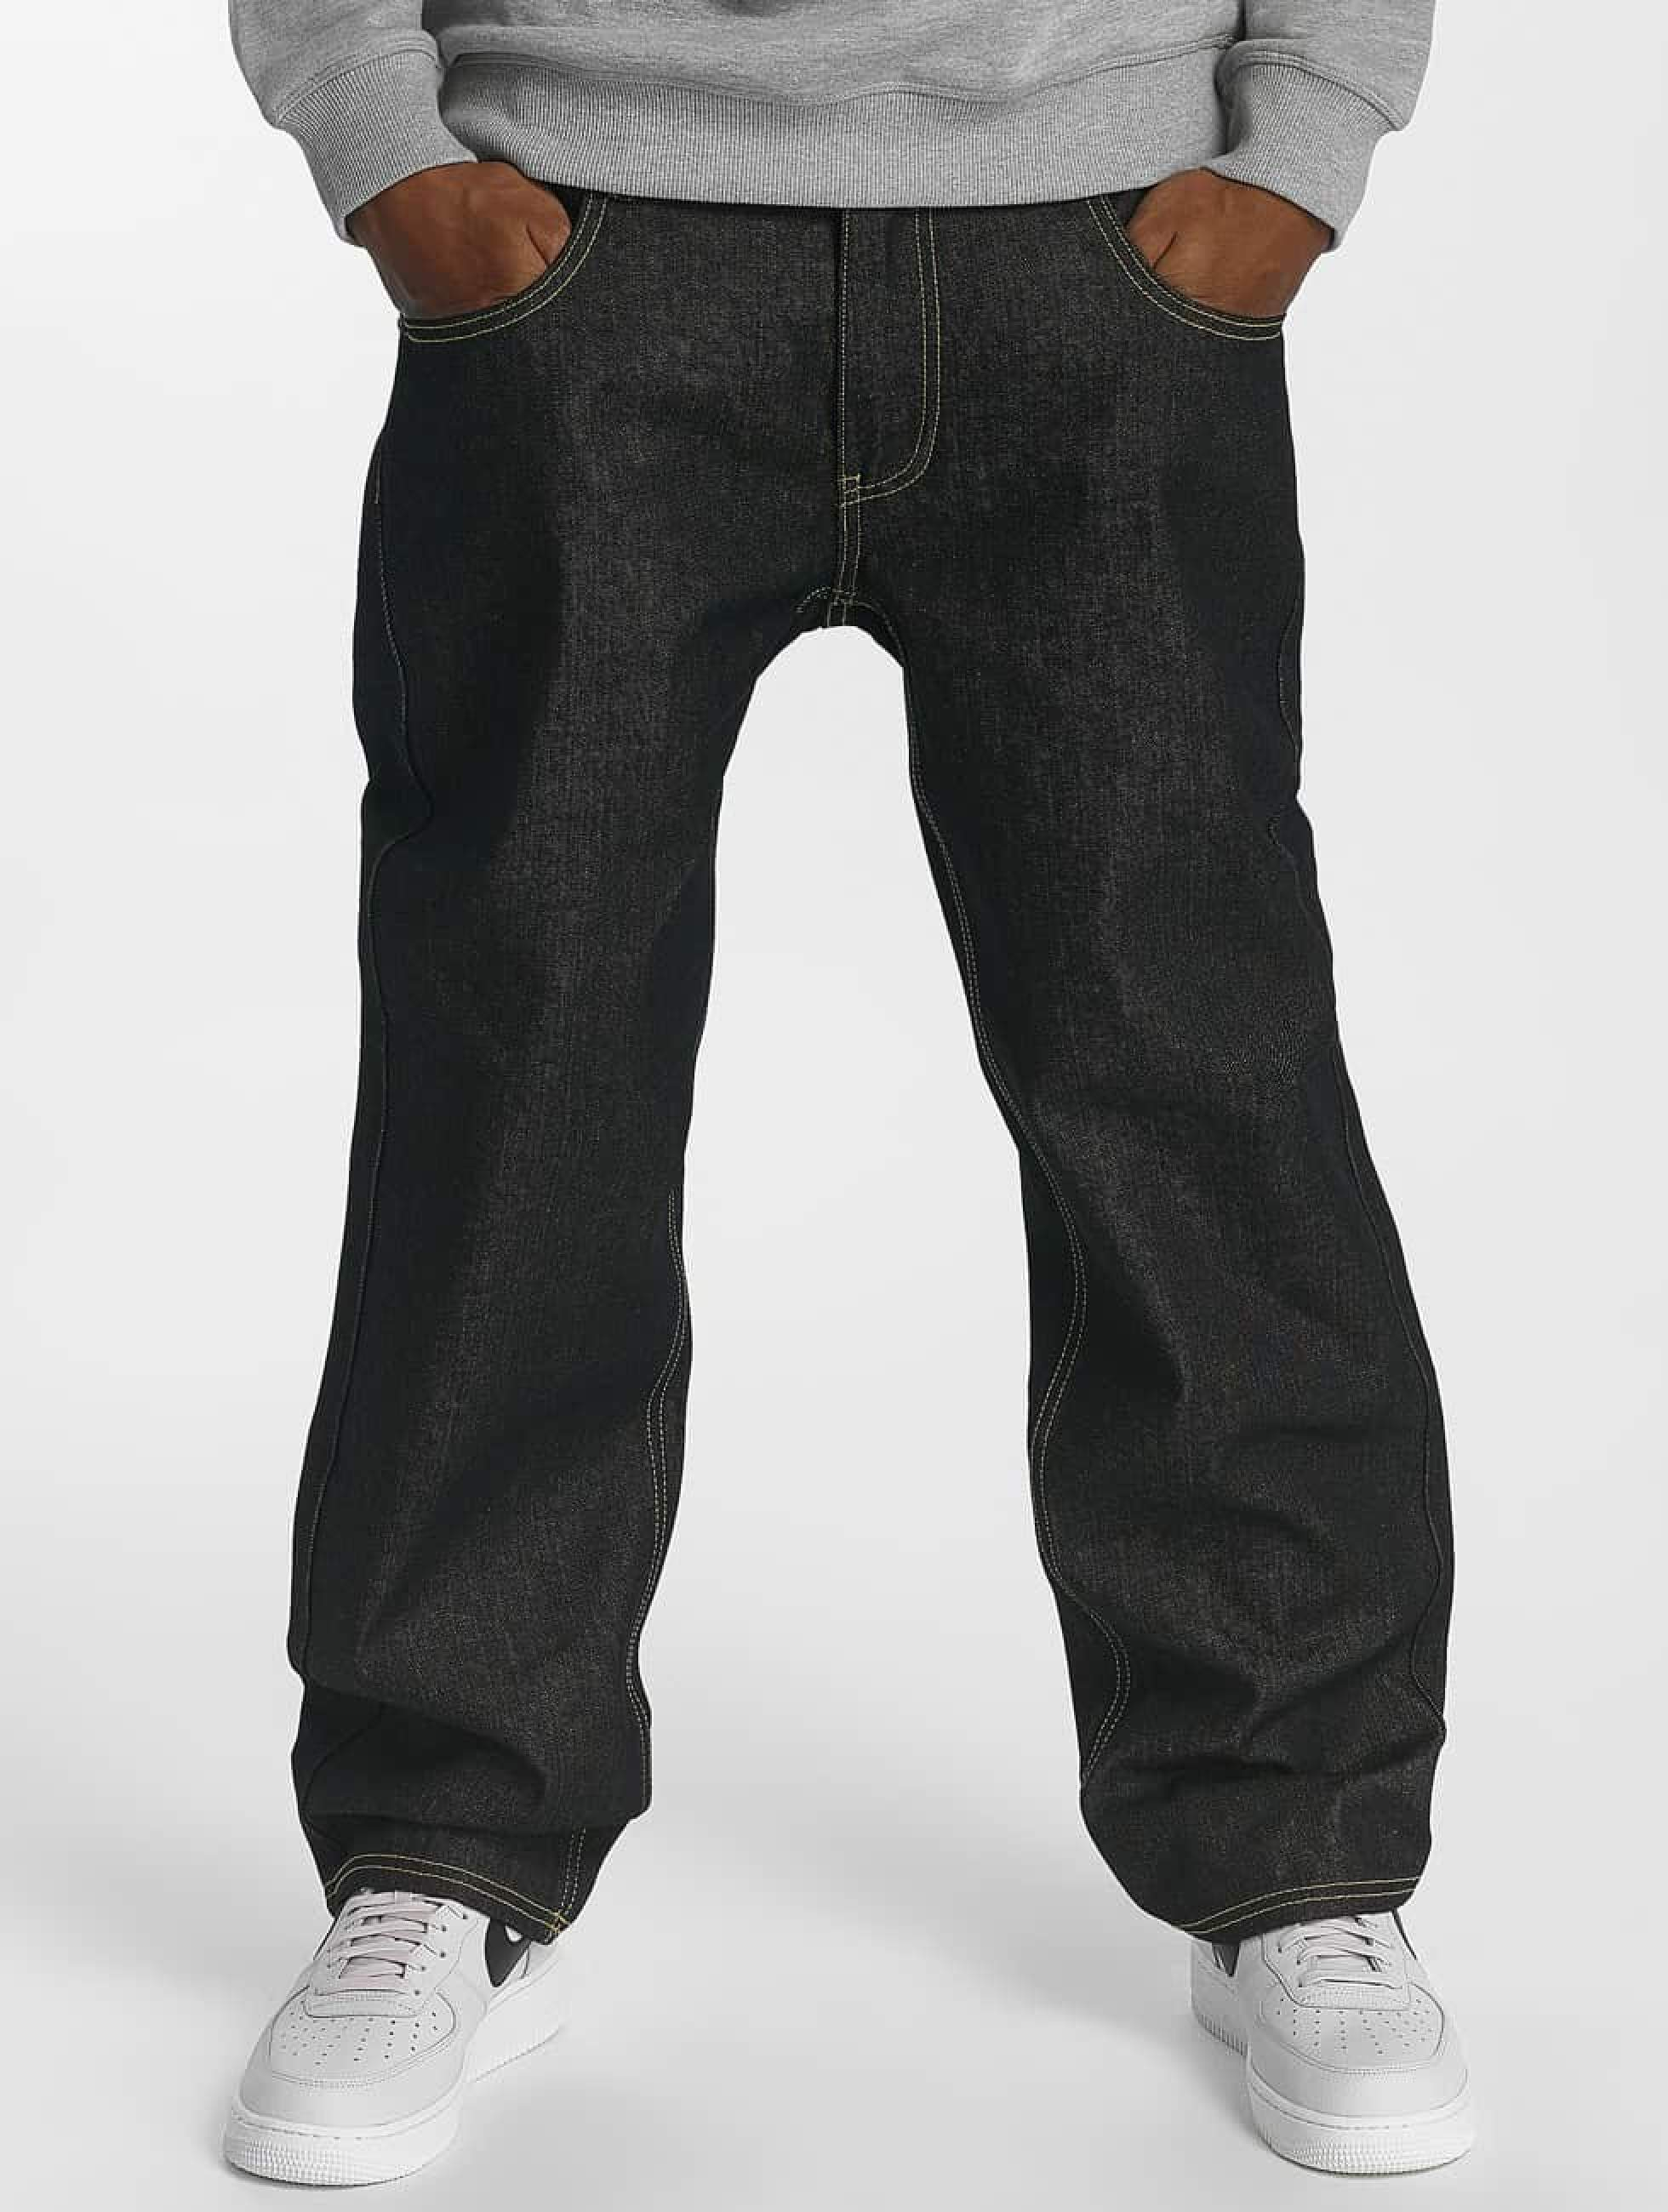 Ecko Unltd. / Loose Fit Jeans Gordon's Lo Loose Fit in black W 34 L 34